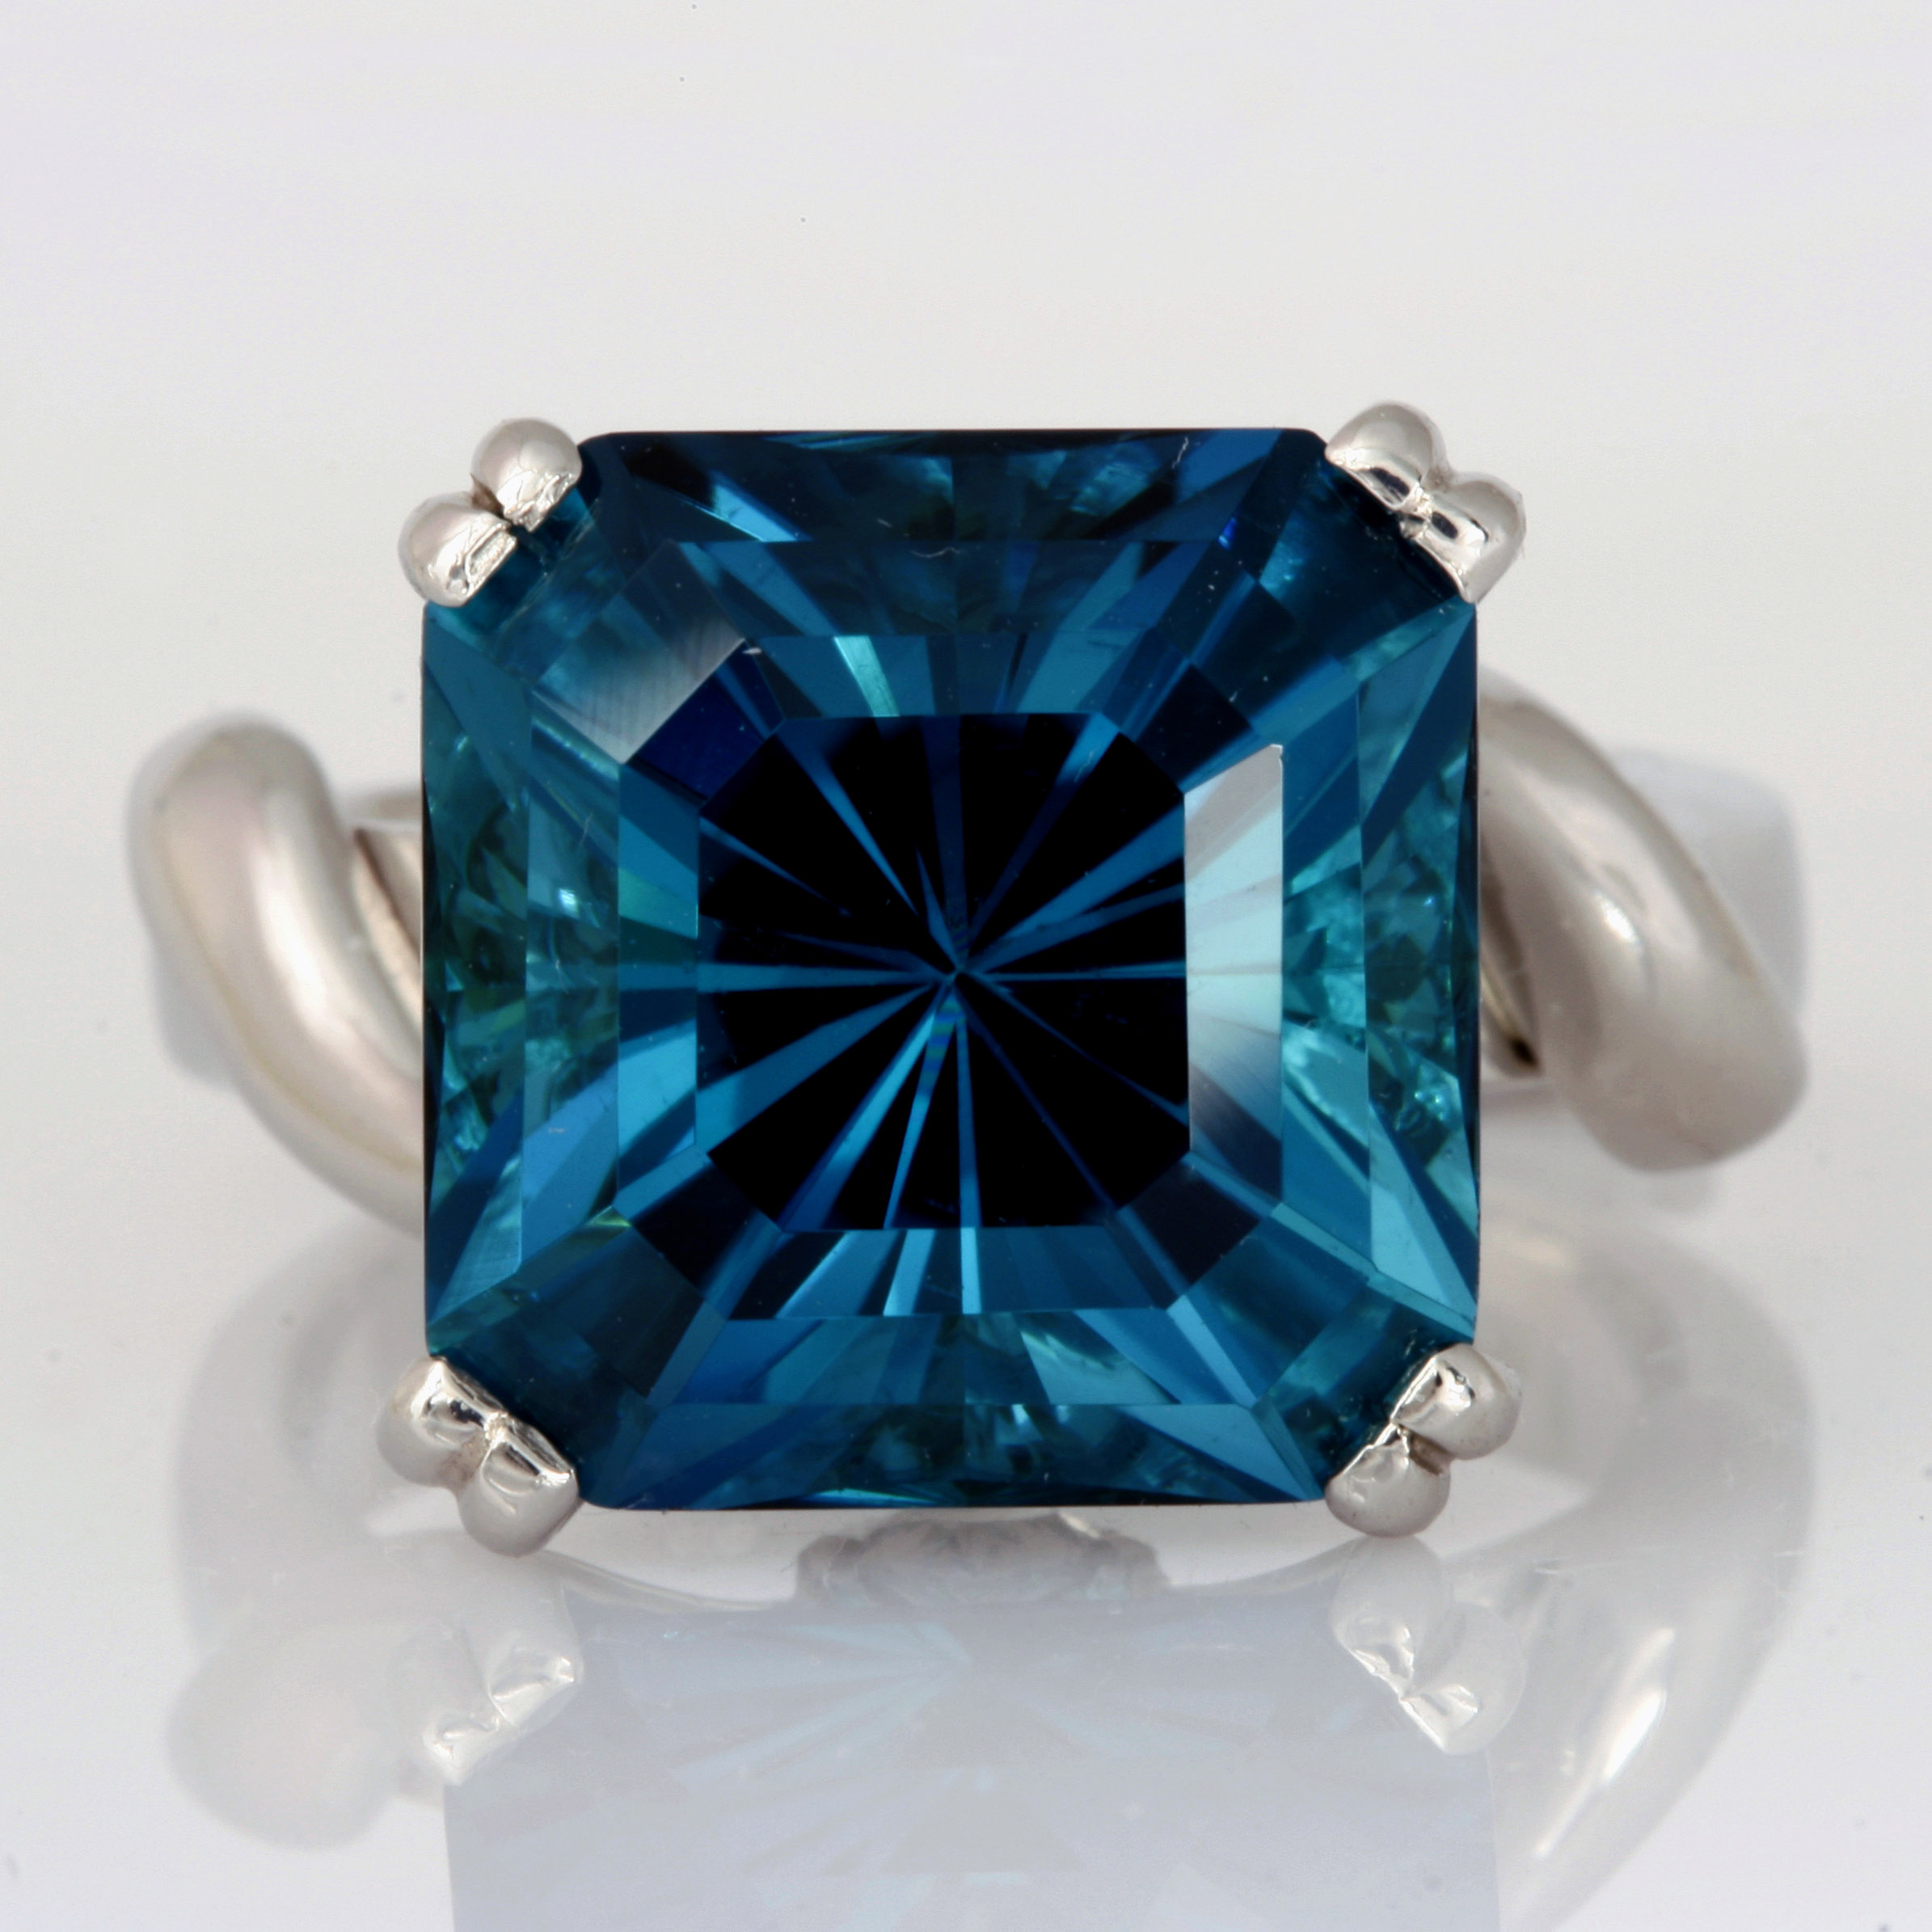 Handmade ladies platinum ring featuring a Indicolite Tourmaline and pear shape diamonds